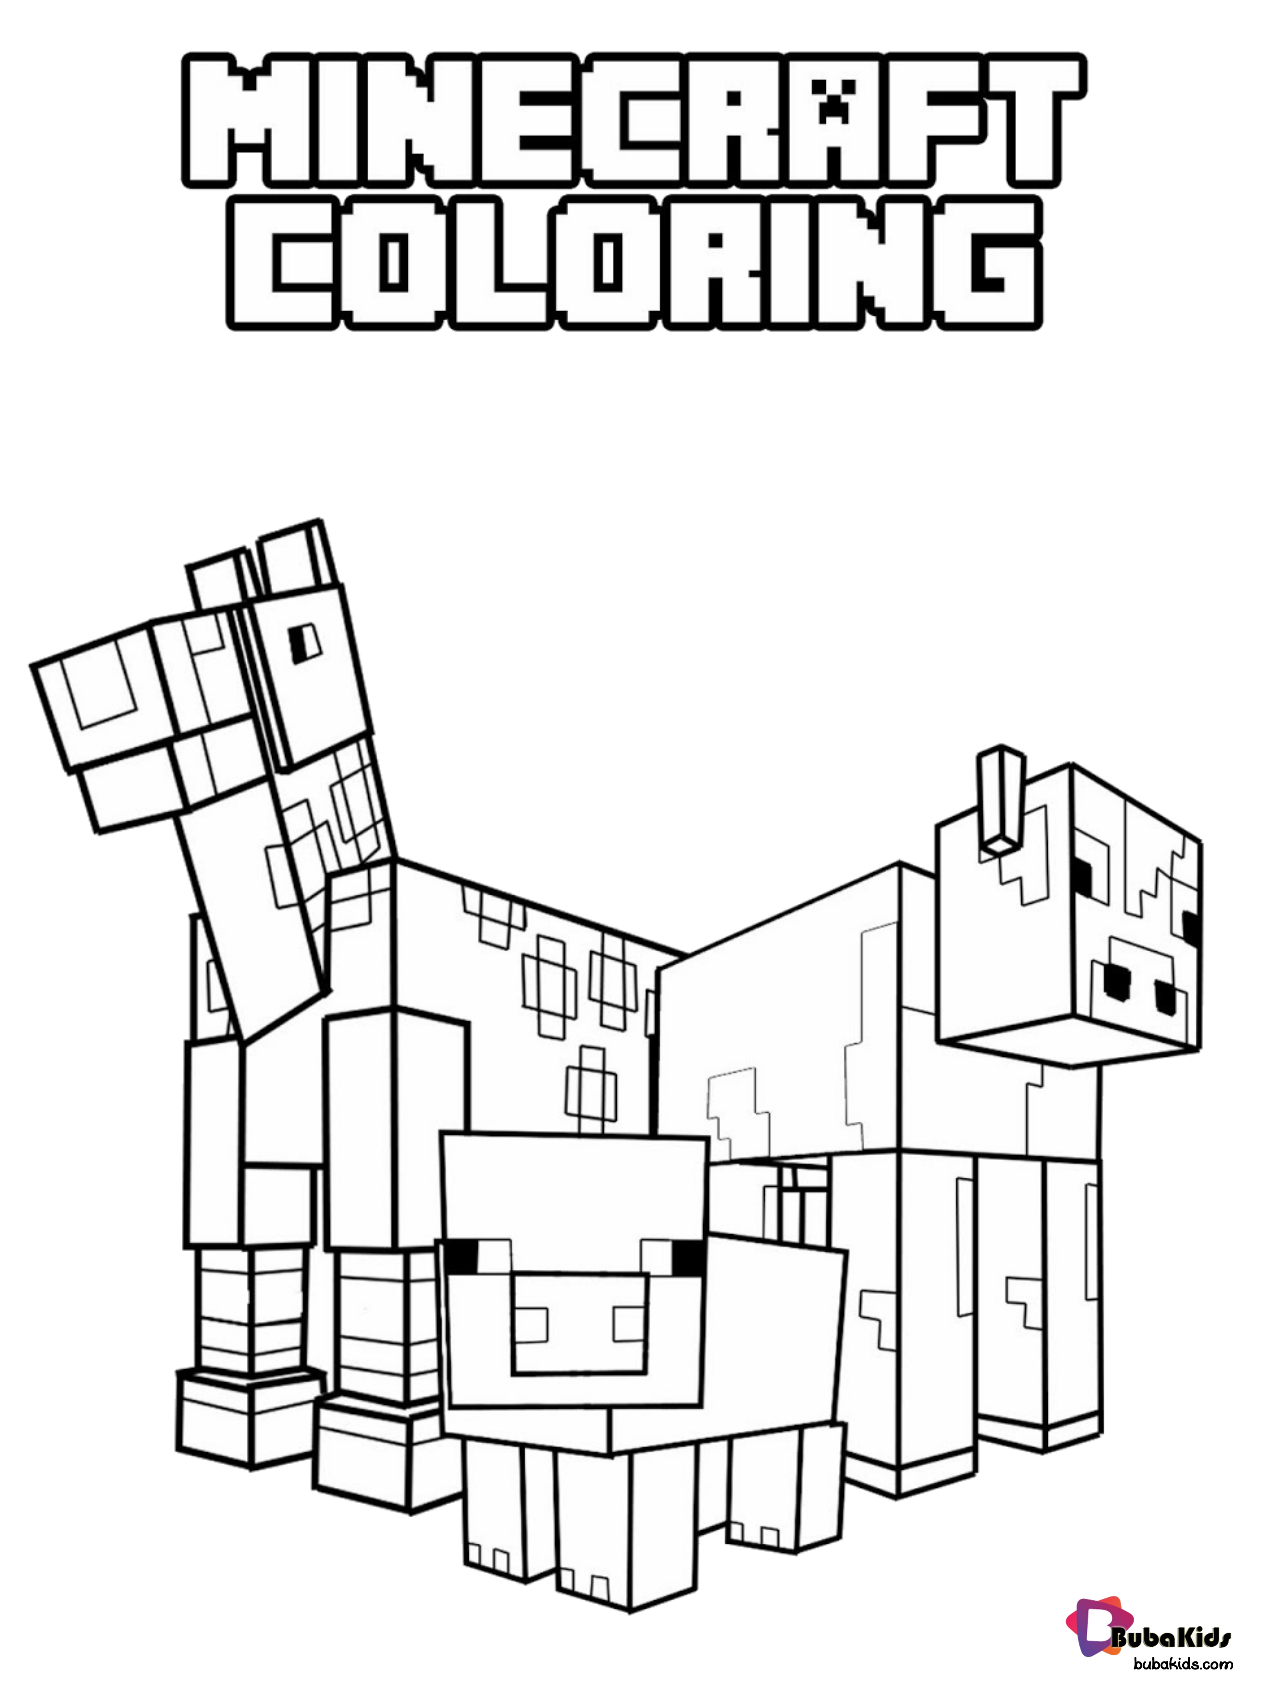 Minecraft Animals Coloring Pages Collection Of Cartoon Coloring Pages For Teenag In 2020 Minecraft Coloring Pages Printable Coloring Pages Thanksgiving Coloring Pages